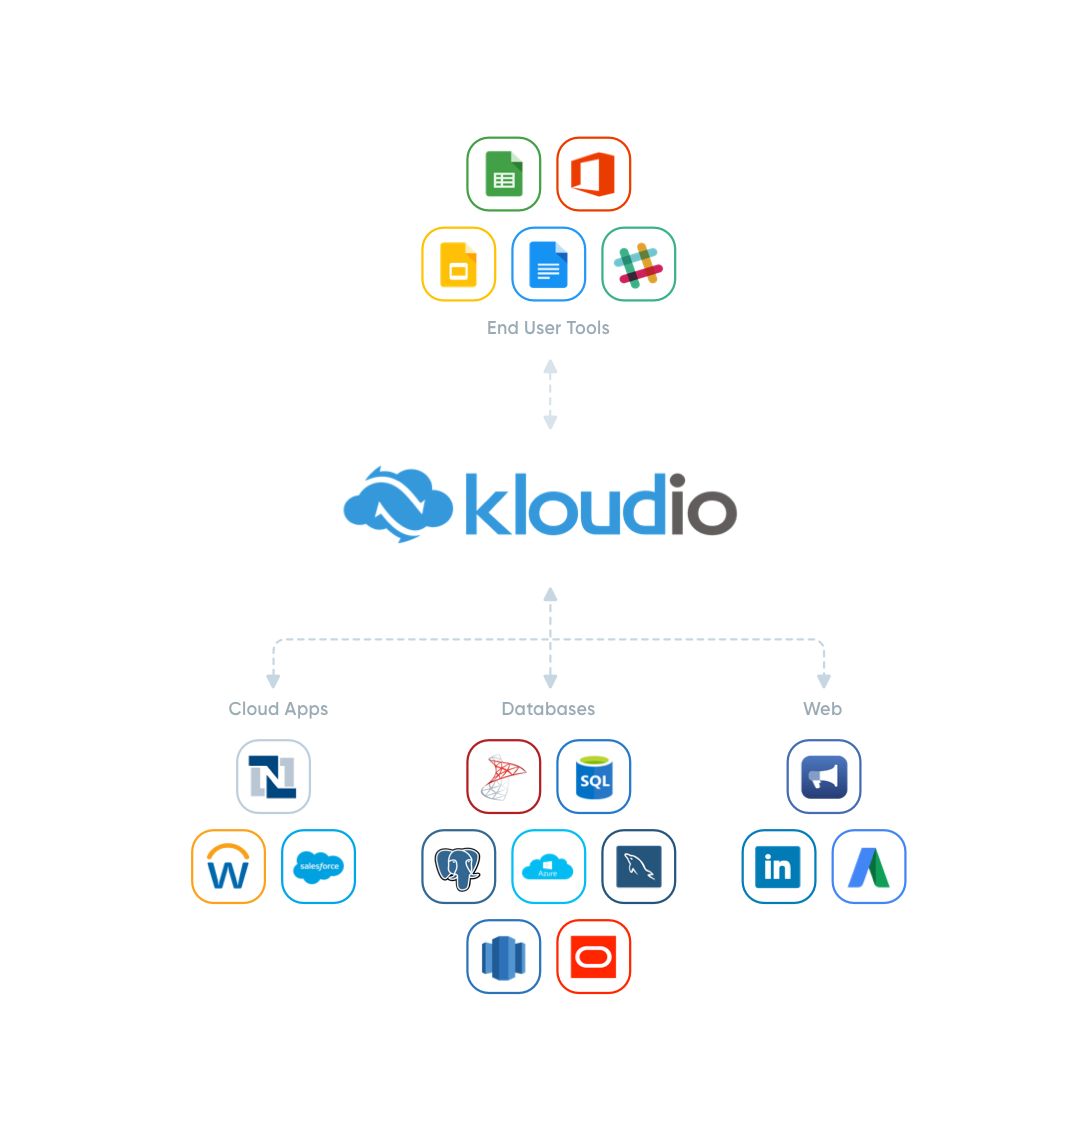 An illustration of how kloud.io self-service reporting tool works